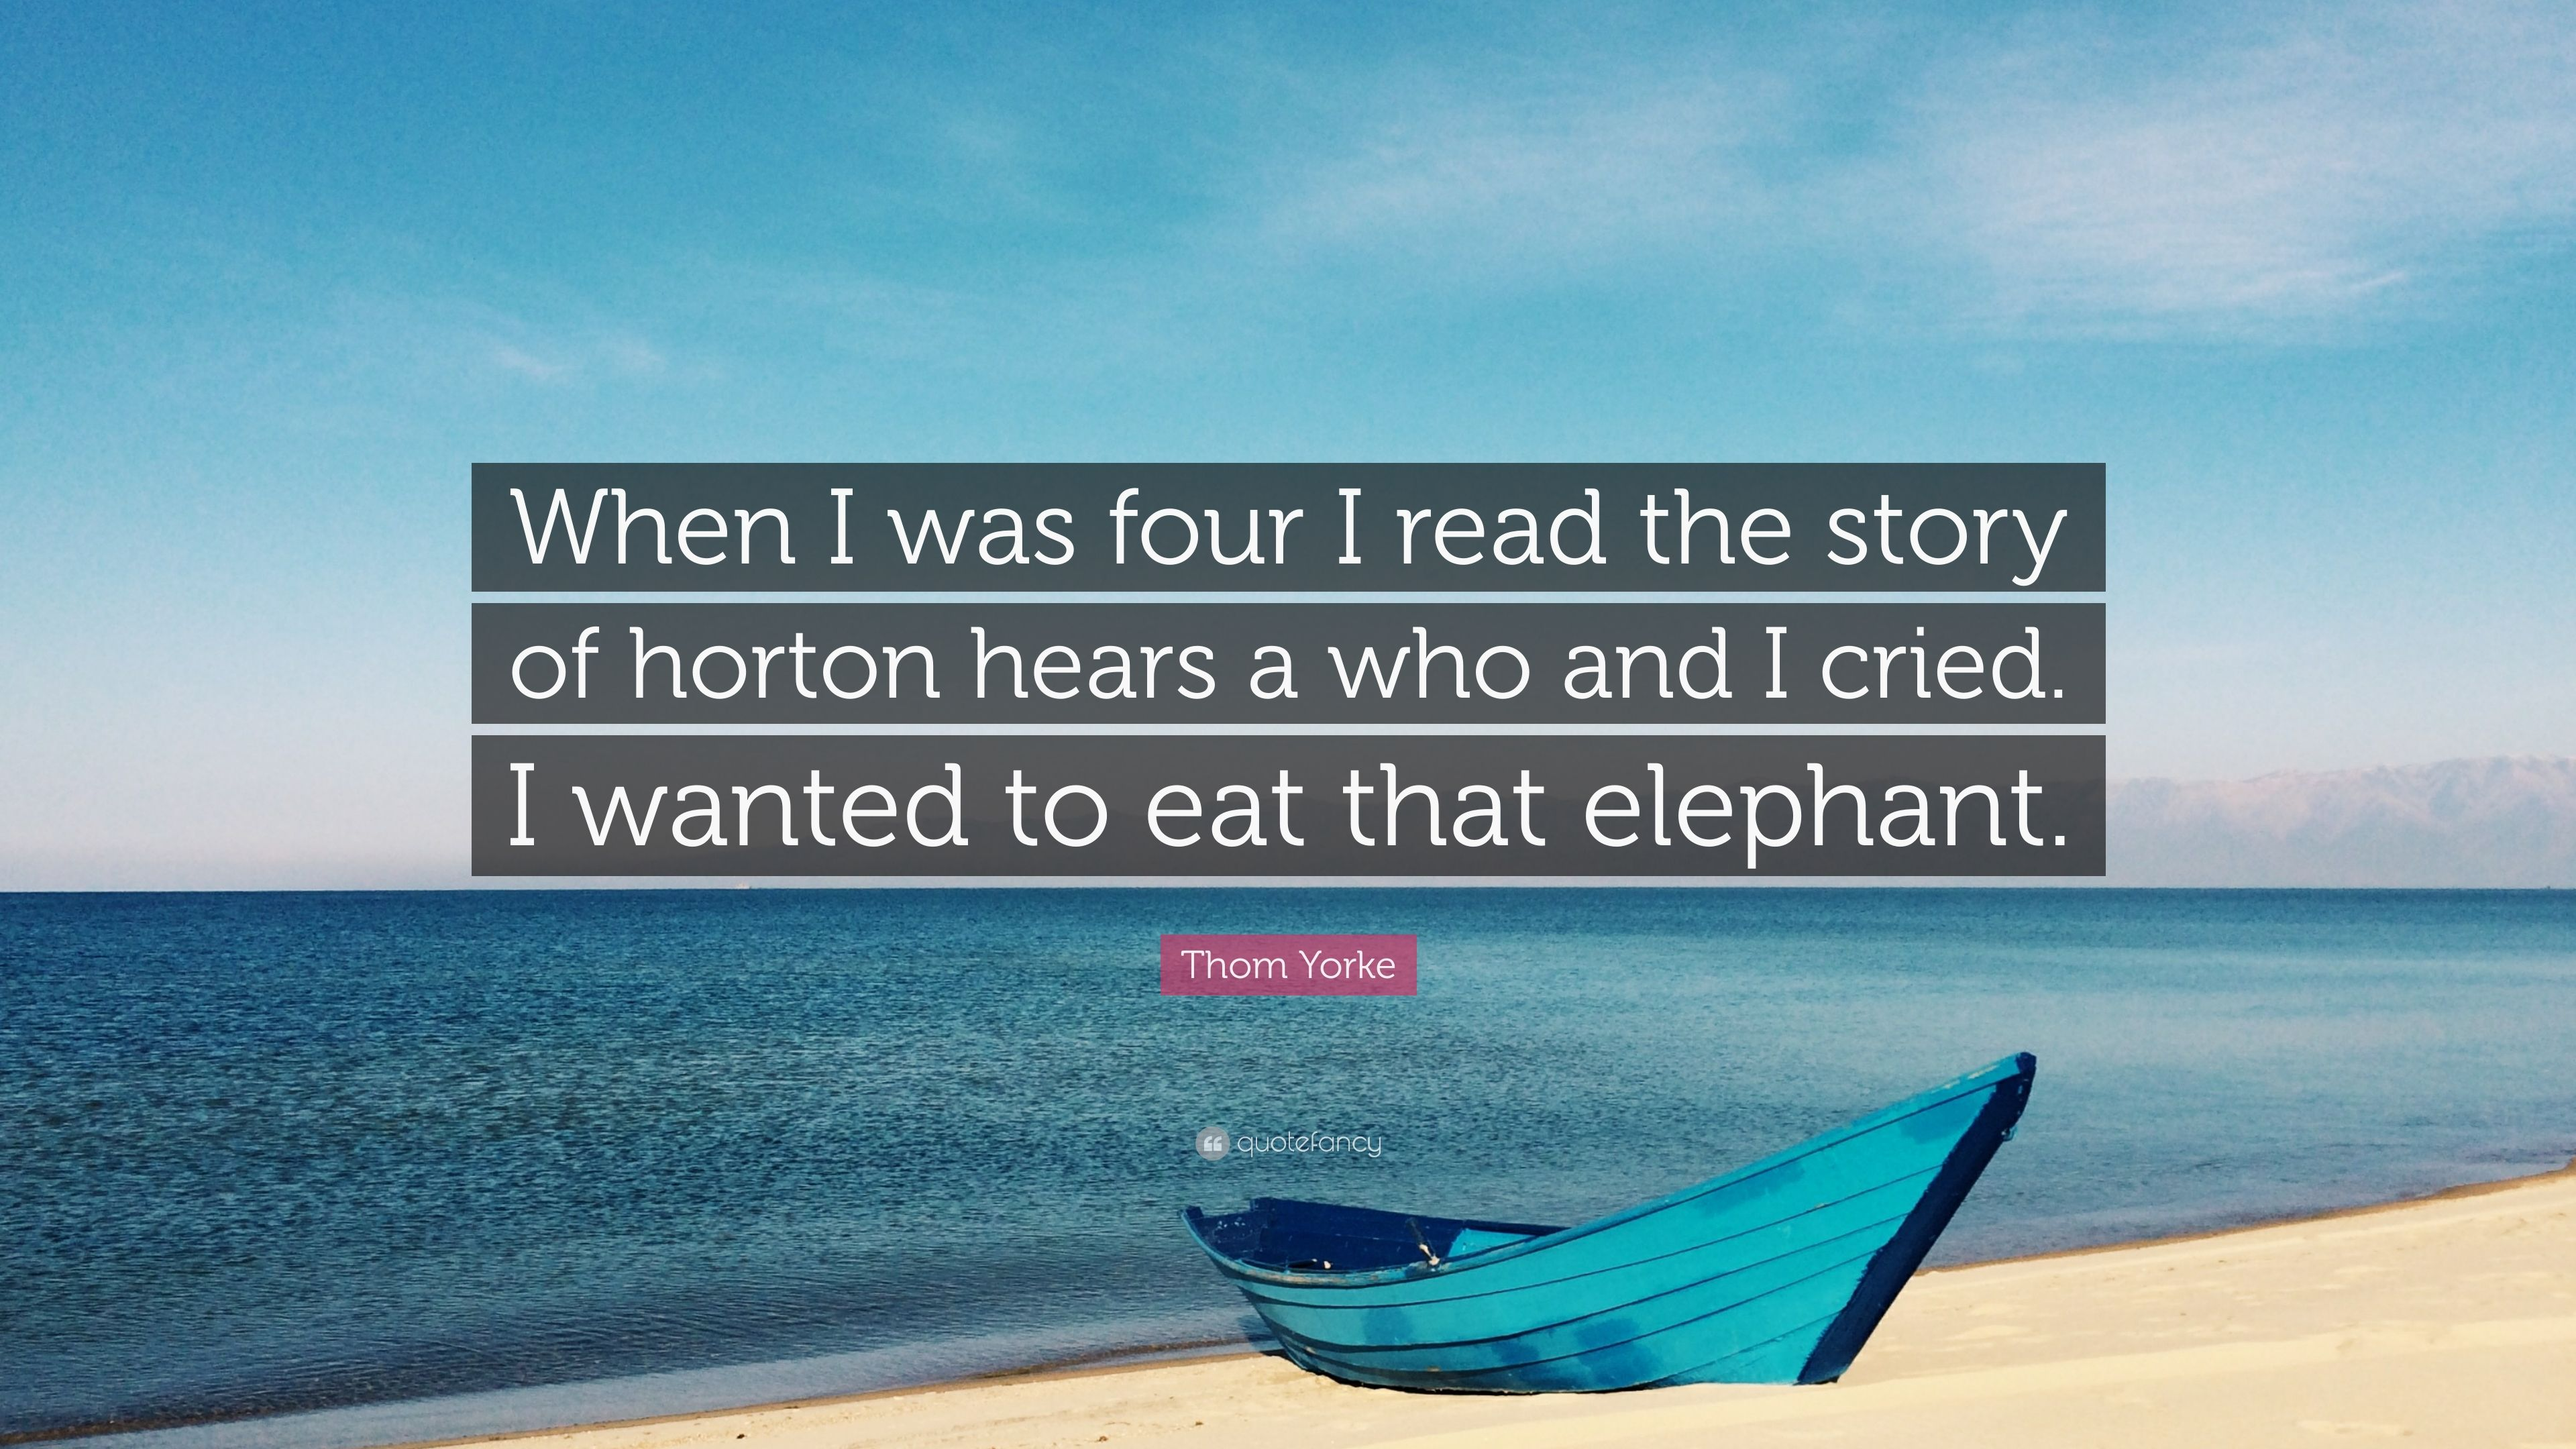 Thom Yorke Quote When I Was Four I Read The Story Of Horton